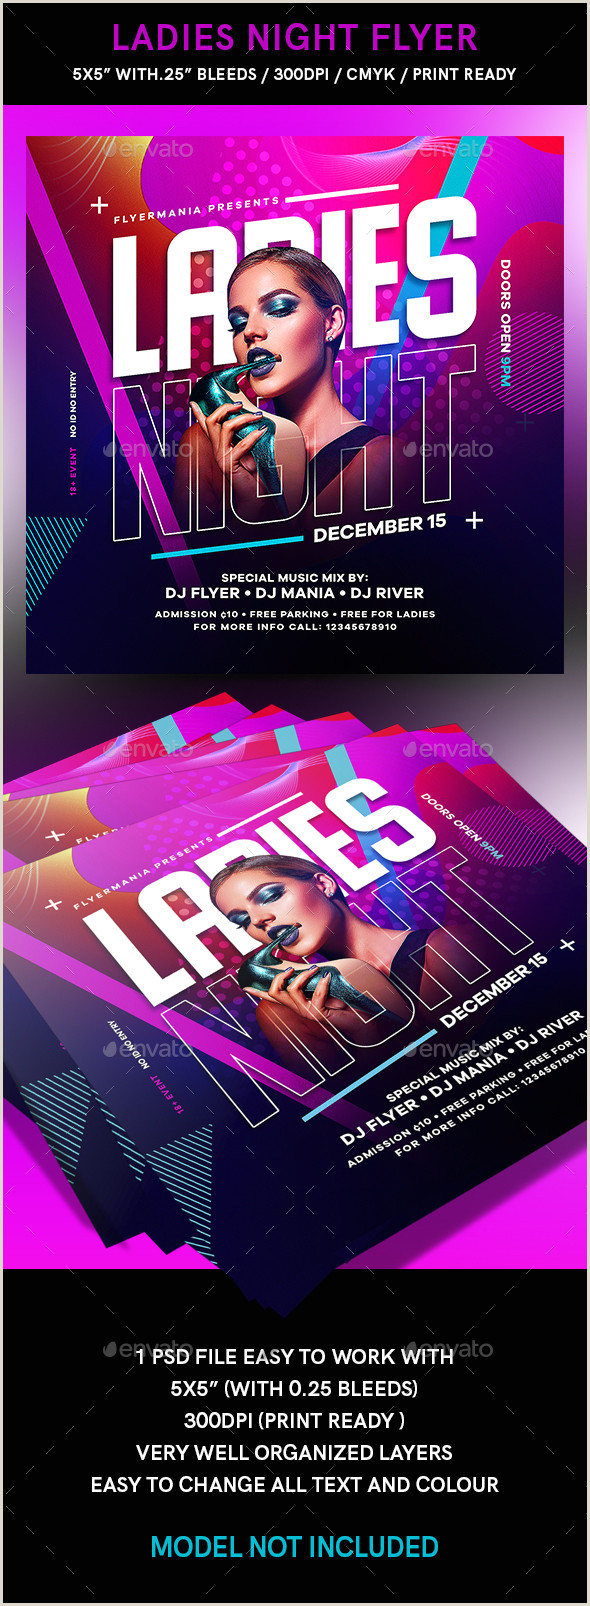 White Party Flyer Flyer Templates From Graphicriver